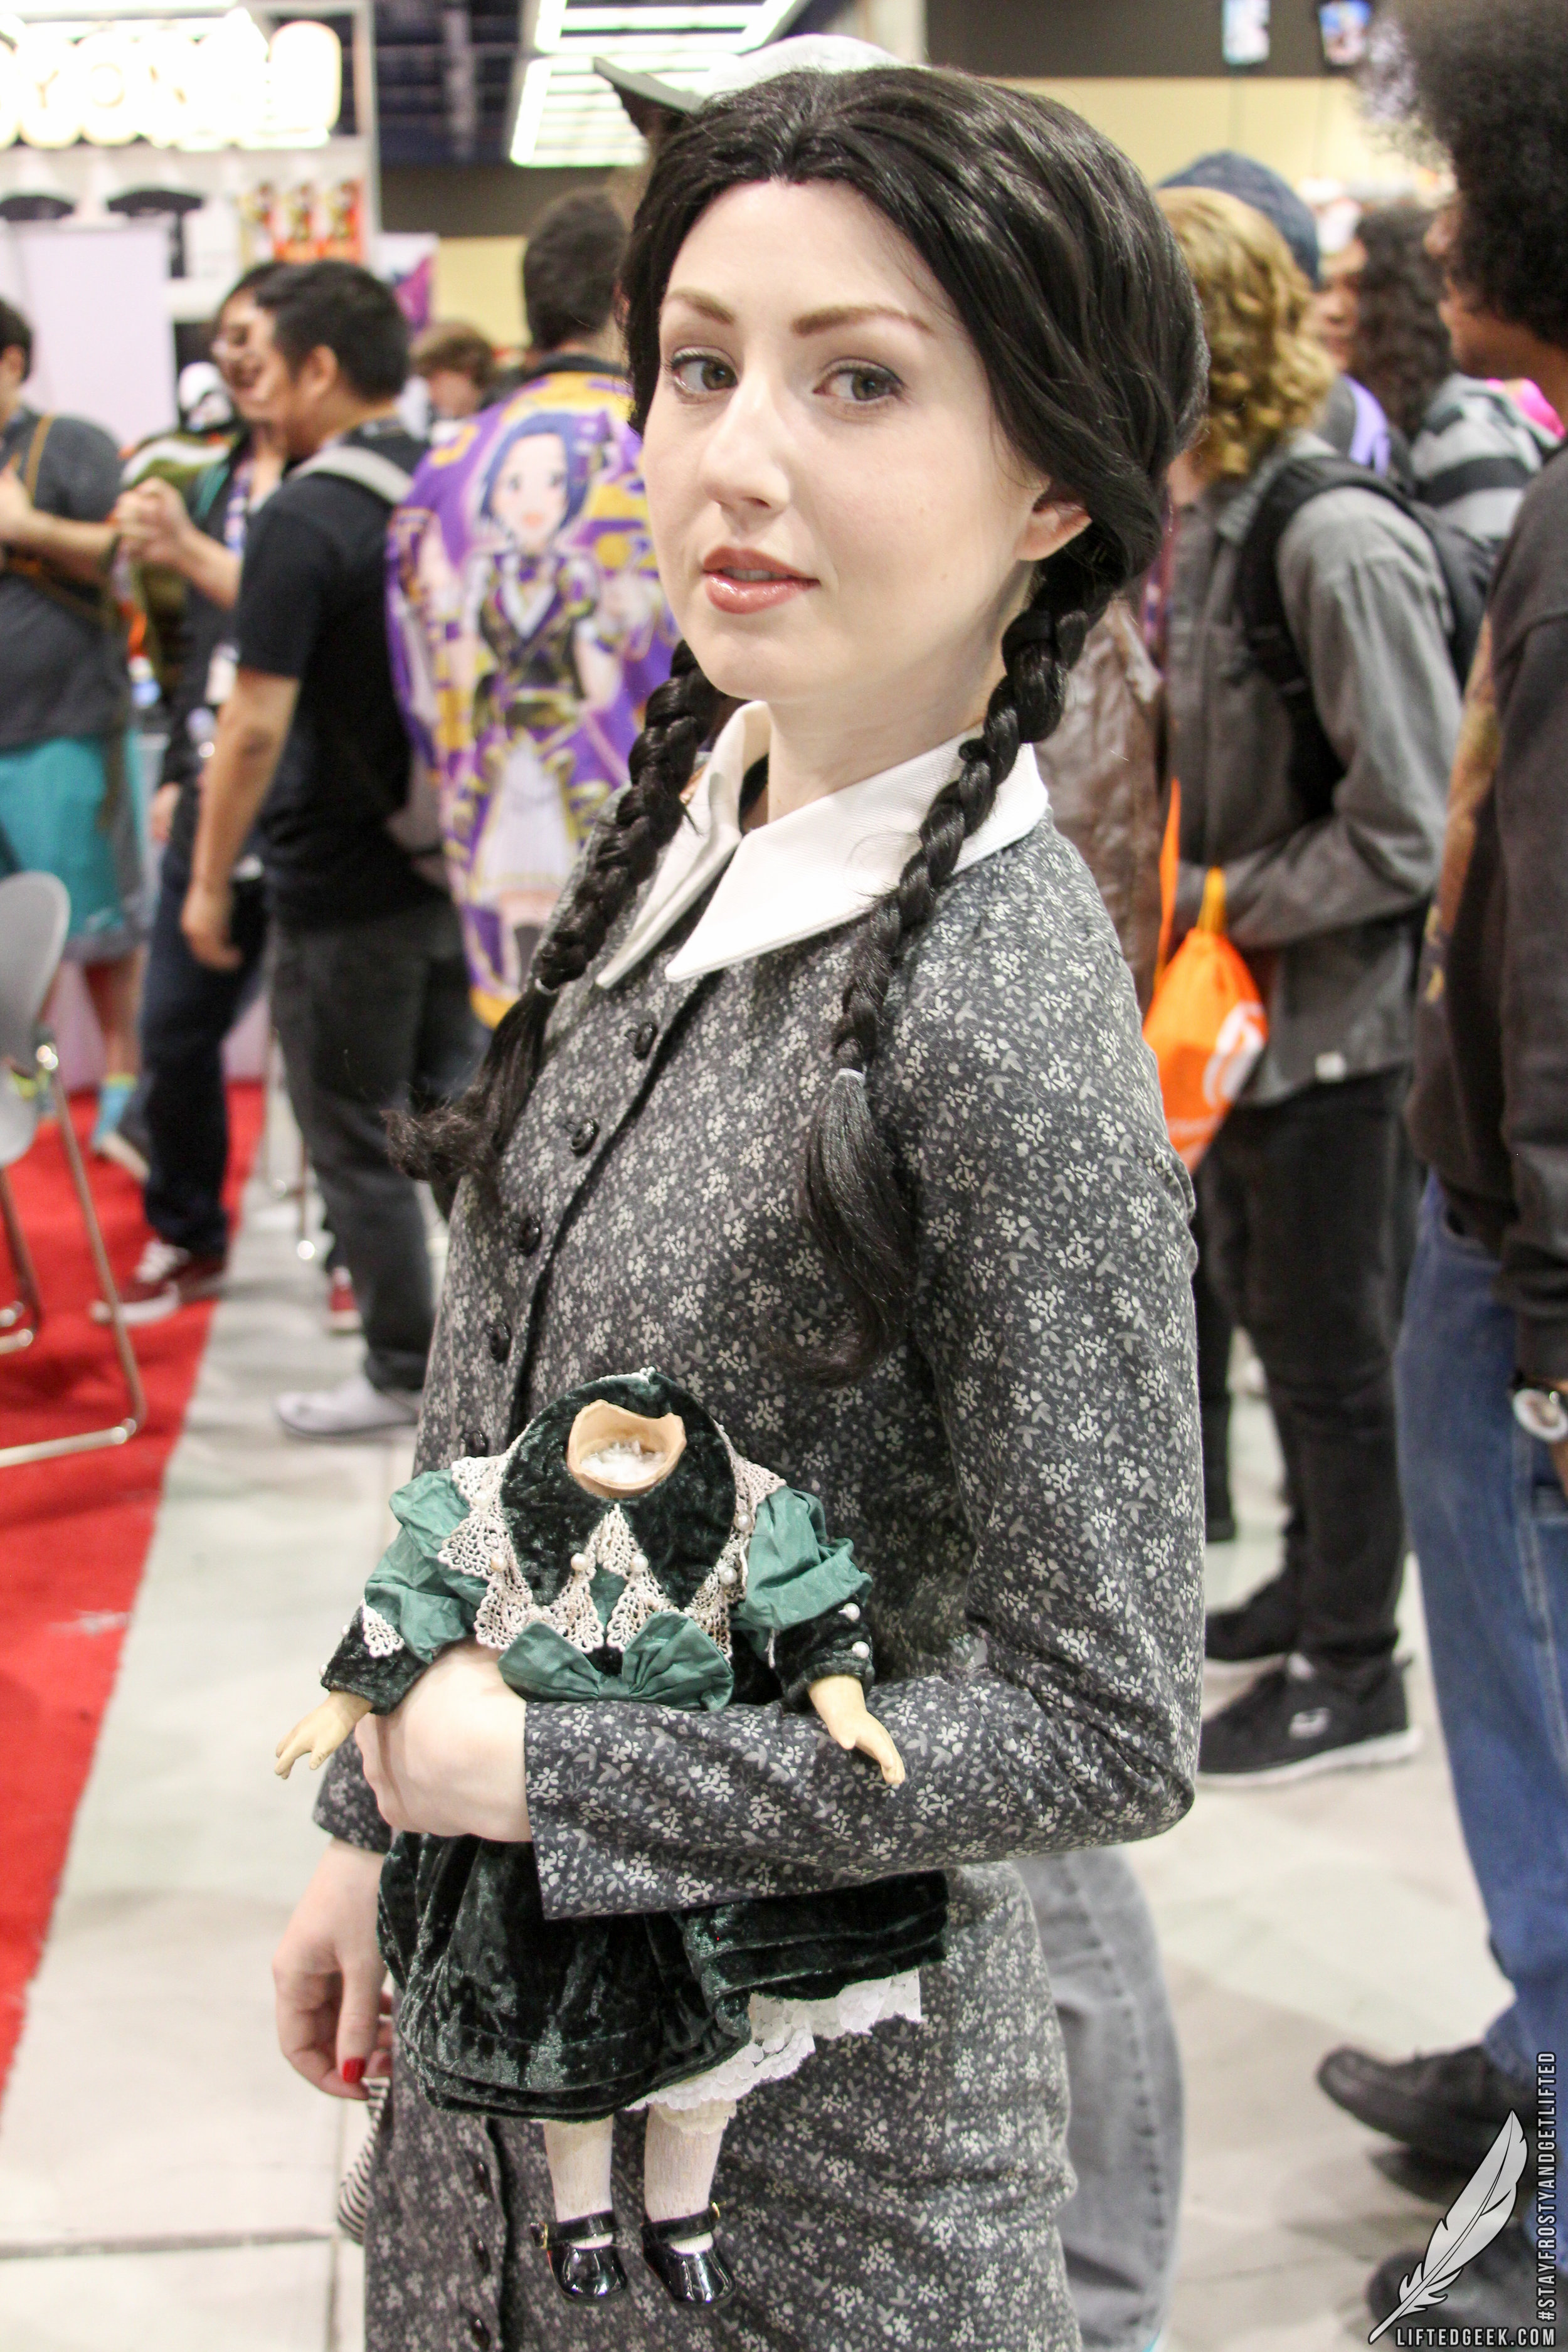 Sakuracon-cosplay-64.jpg